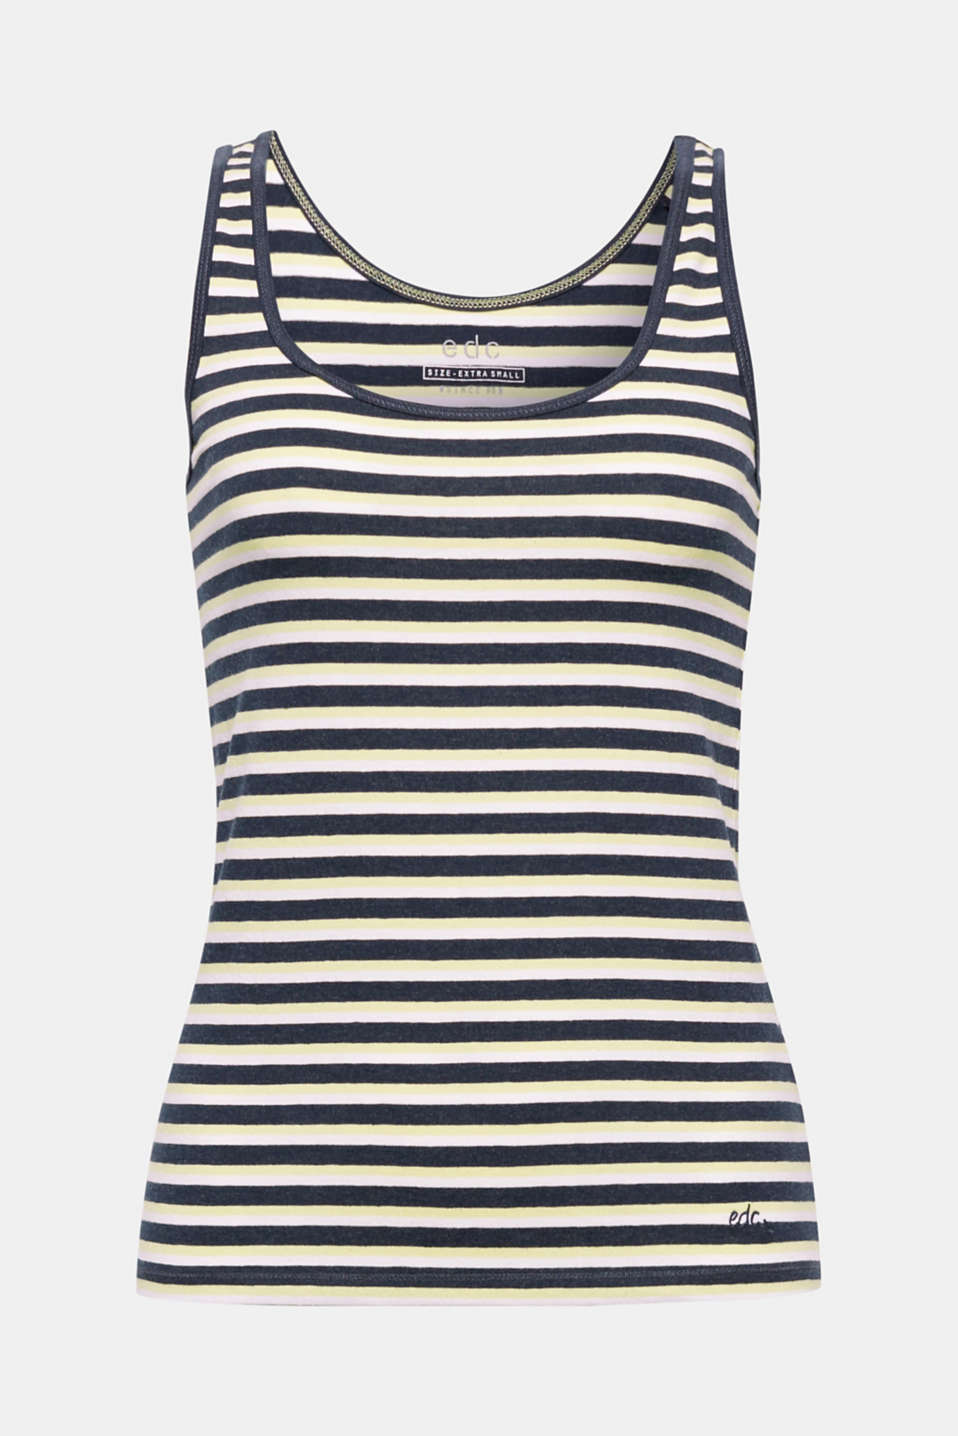 This soft vest made from striped blended cotton jersey with stretch for comfort is a casual piece.